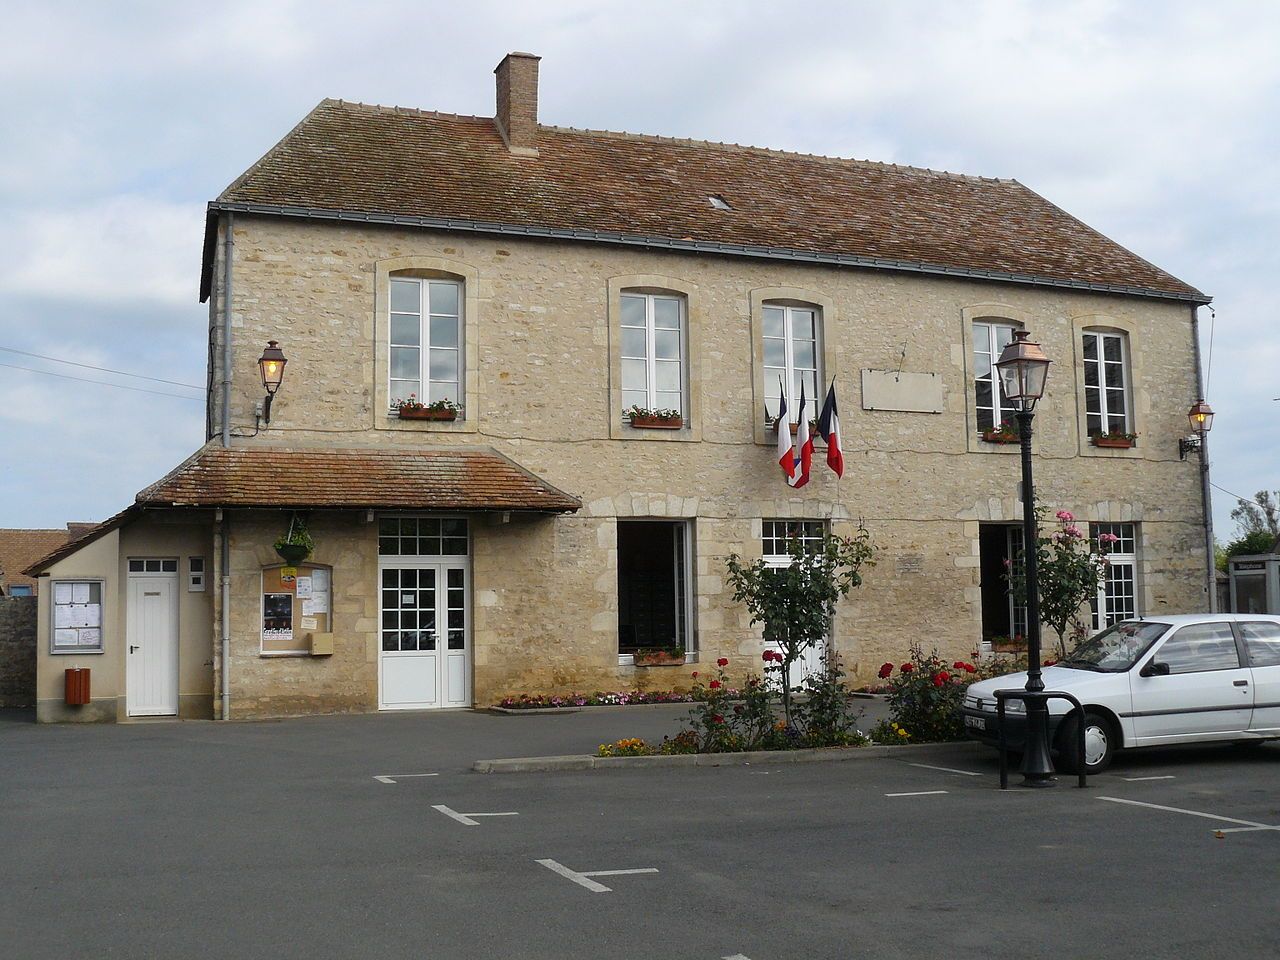 file mairie de bernay en champagne france pays de la loire jpg wikipedia. Black Bedroom Furniture Sets. Home Design Ideas